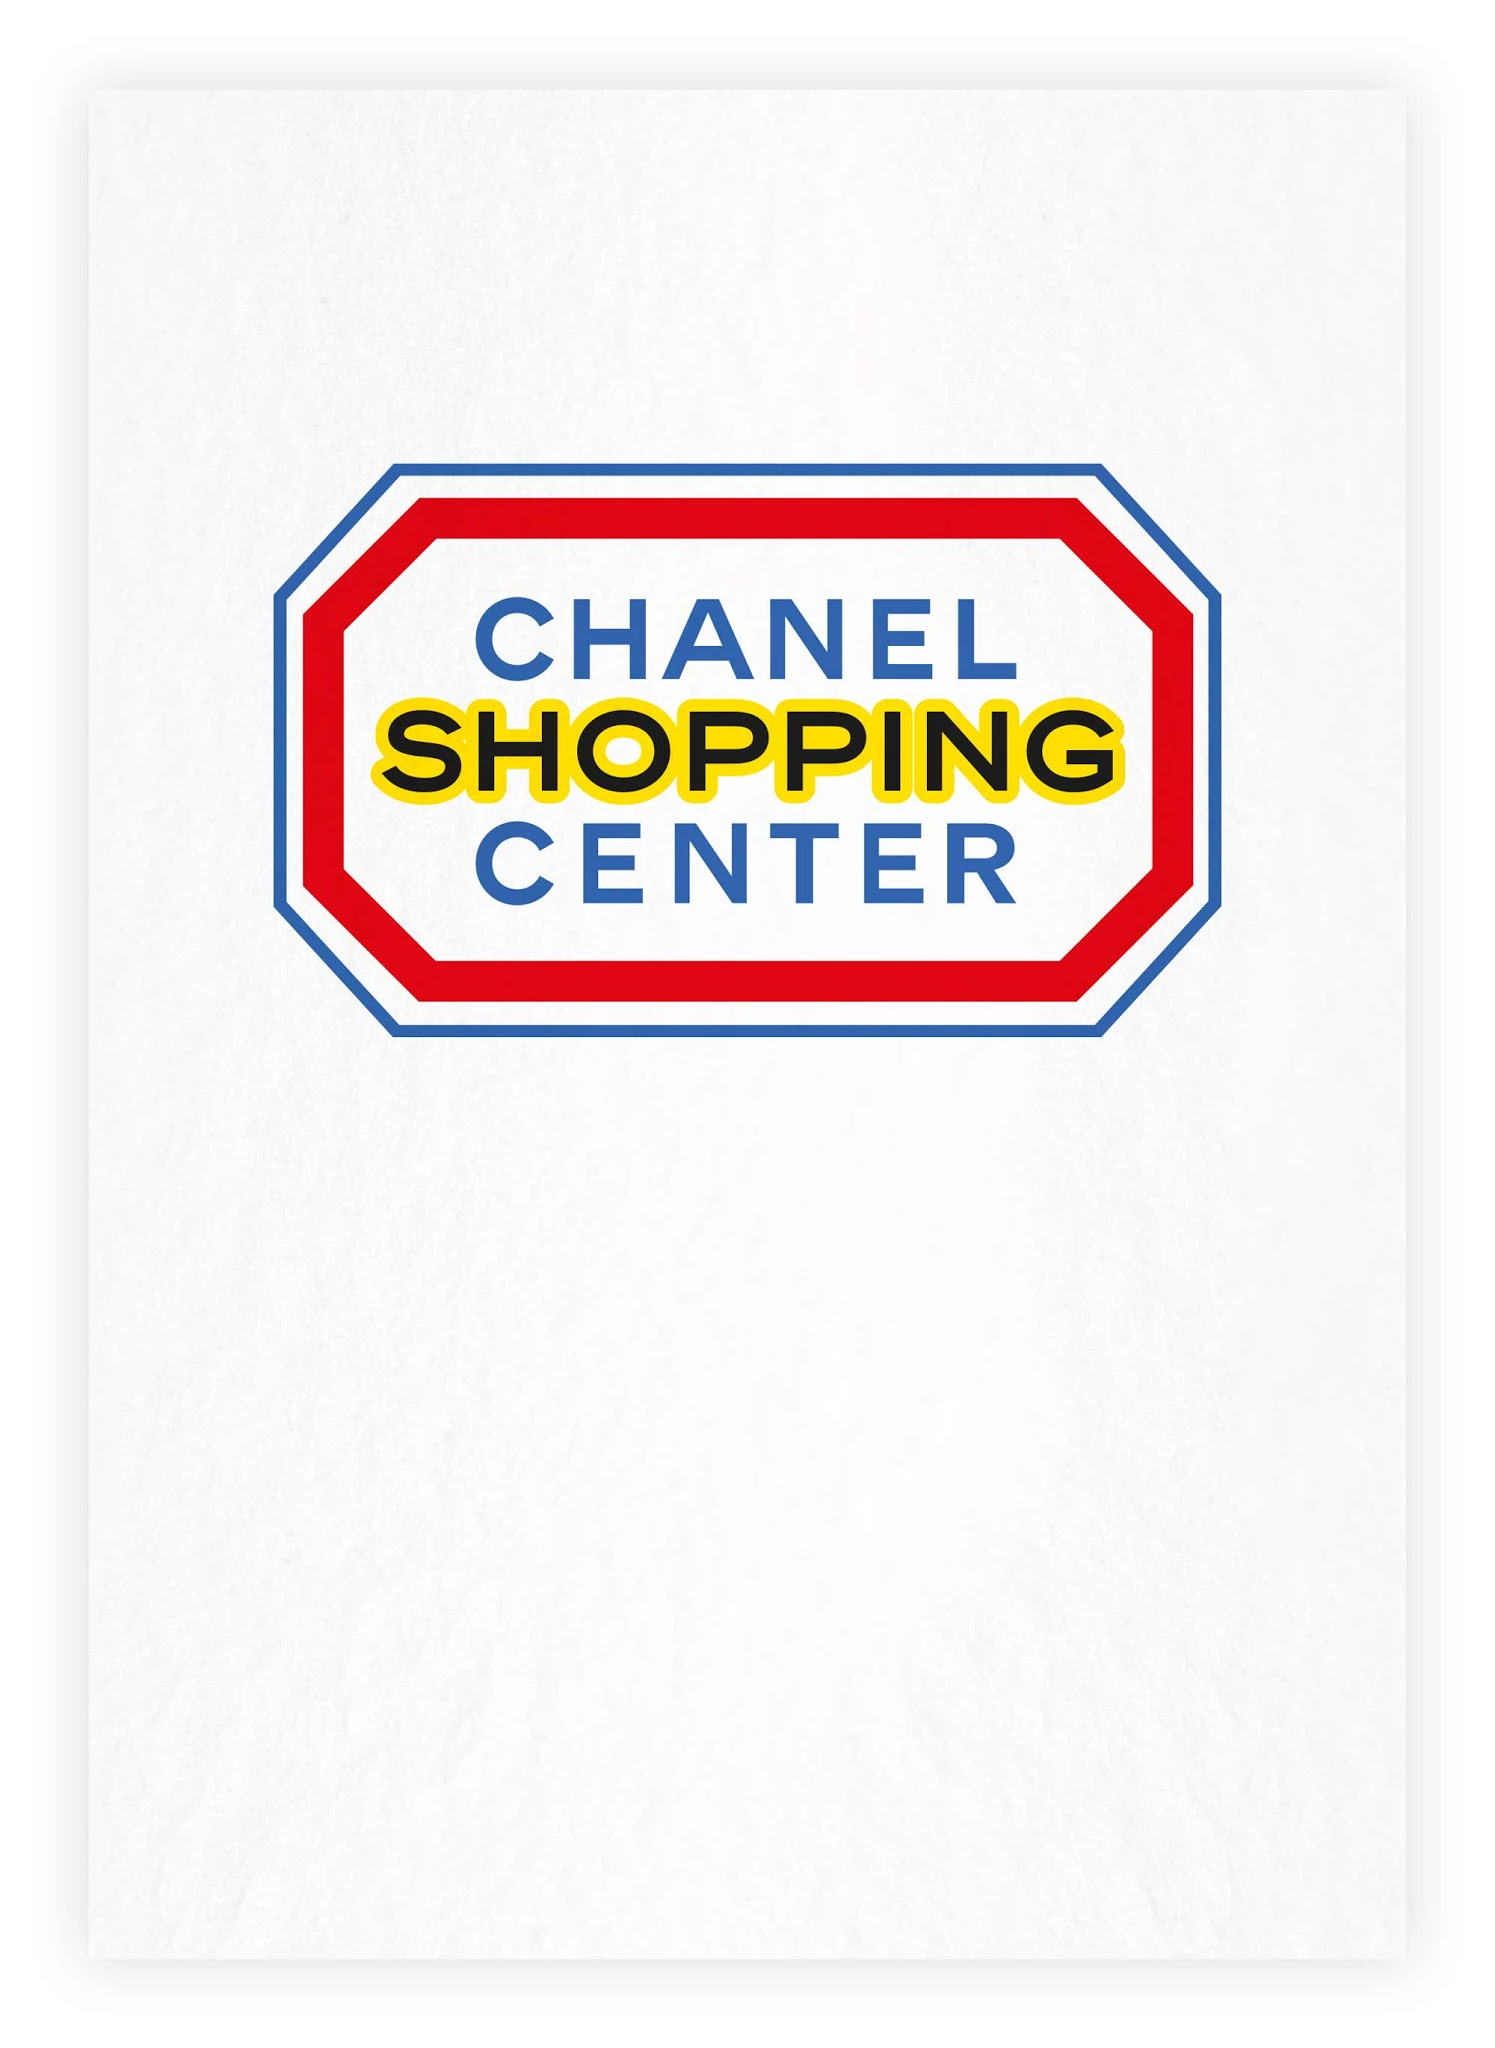 Invitation-CHANEL-Shopping-Center-Twitter-and-Fb